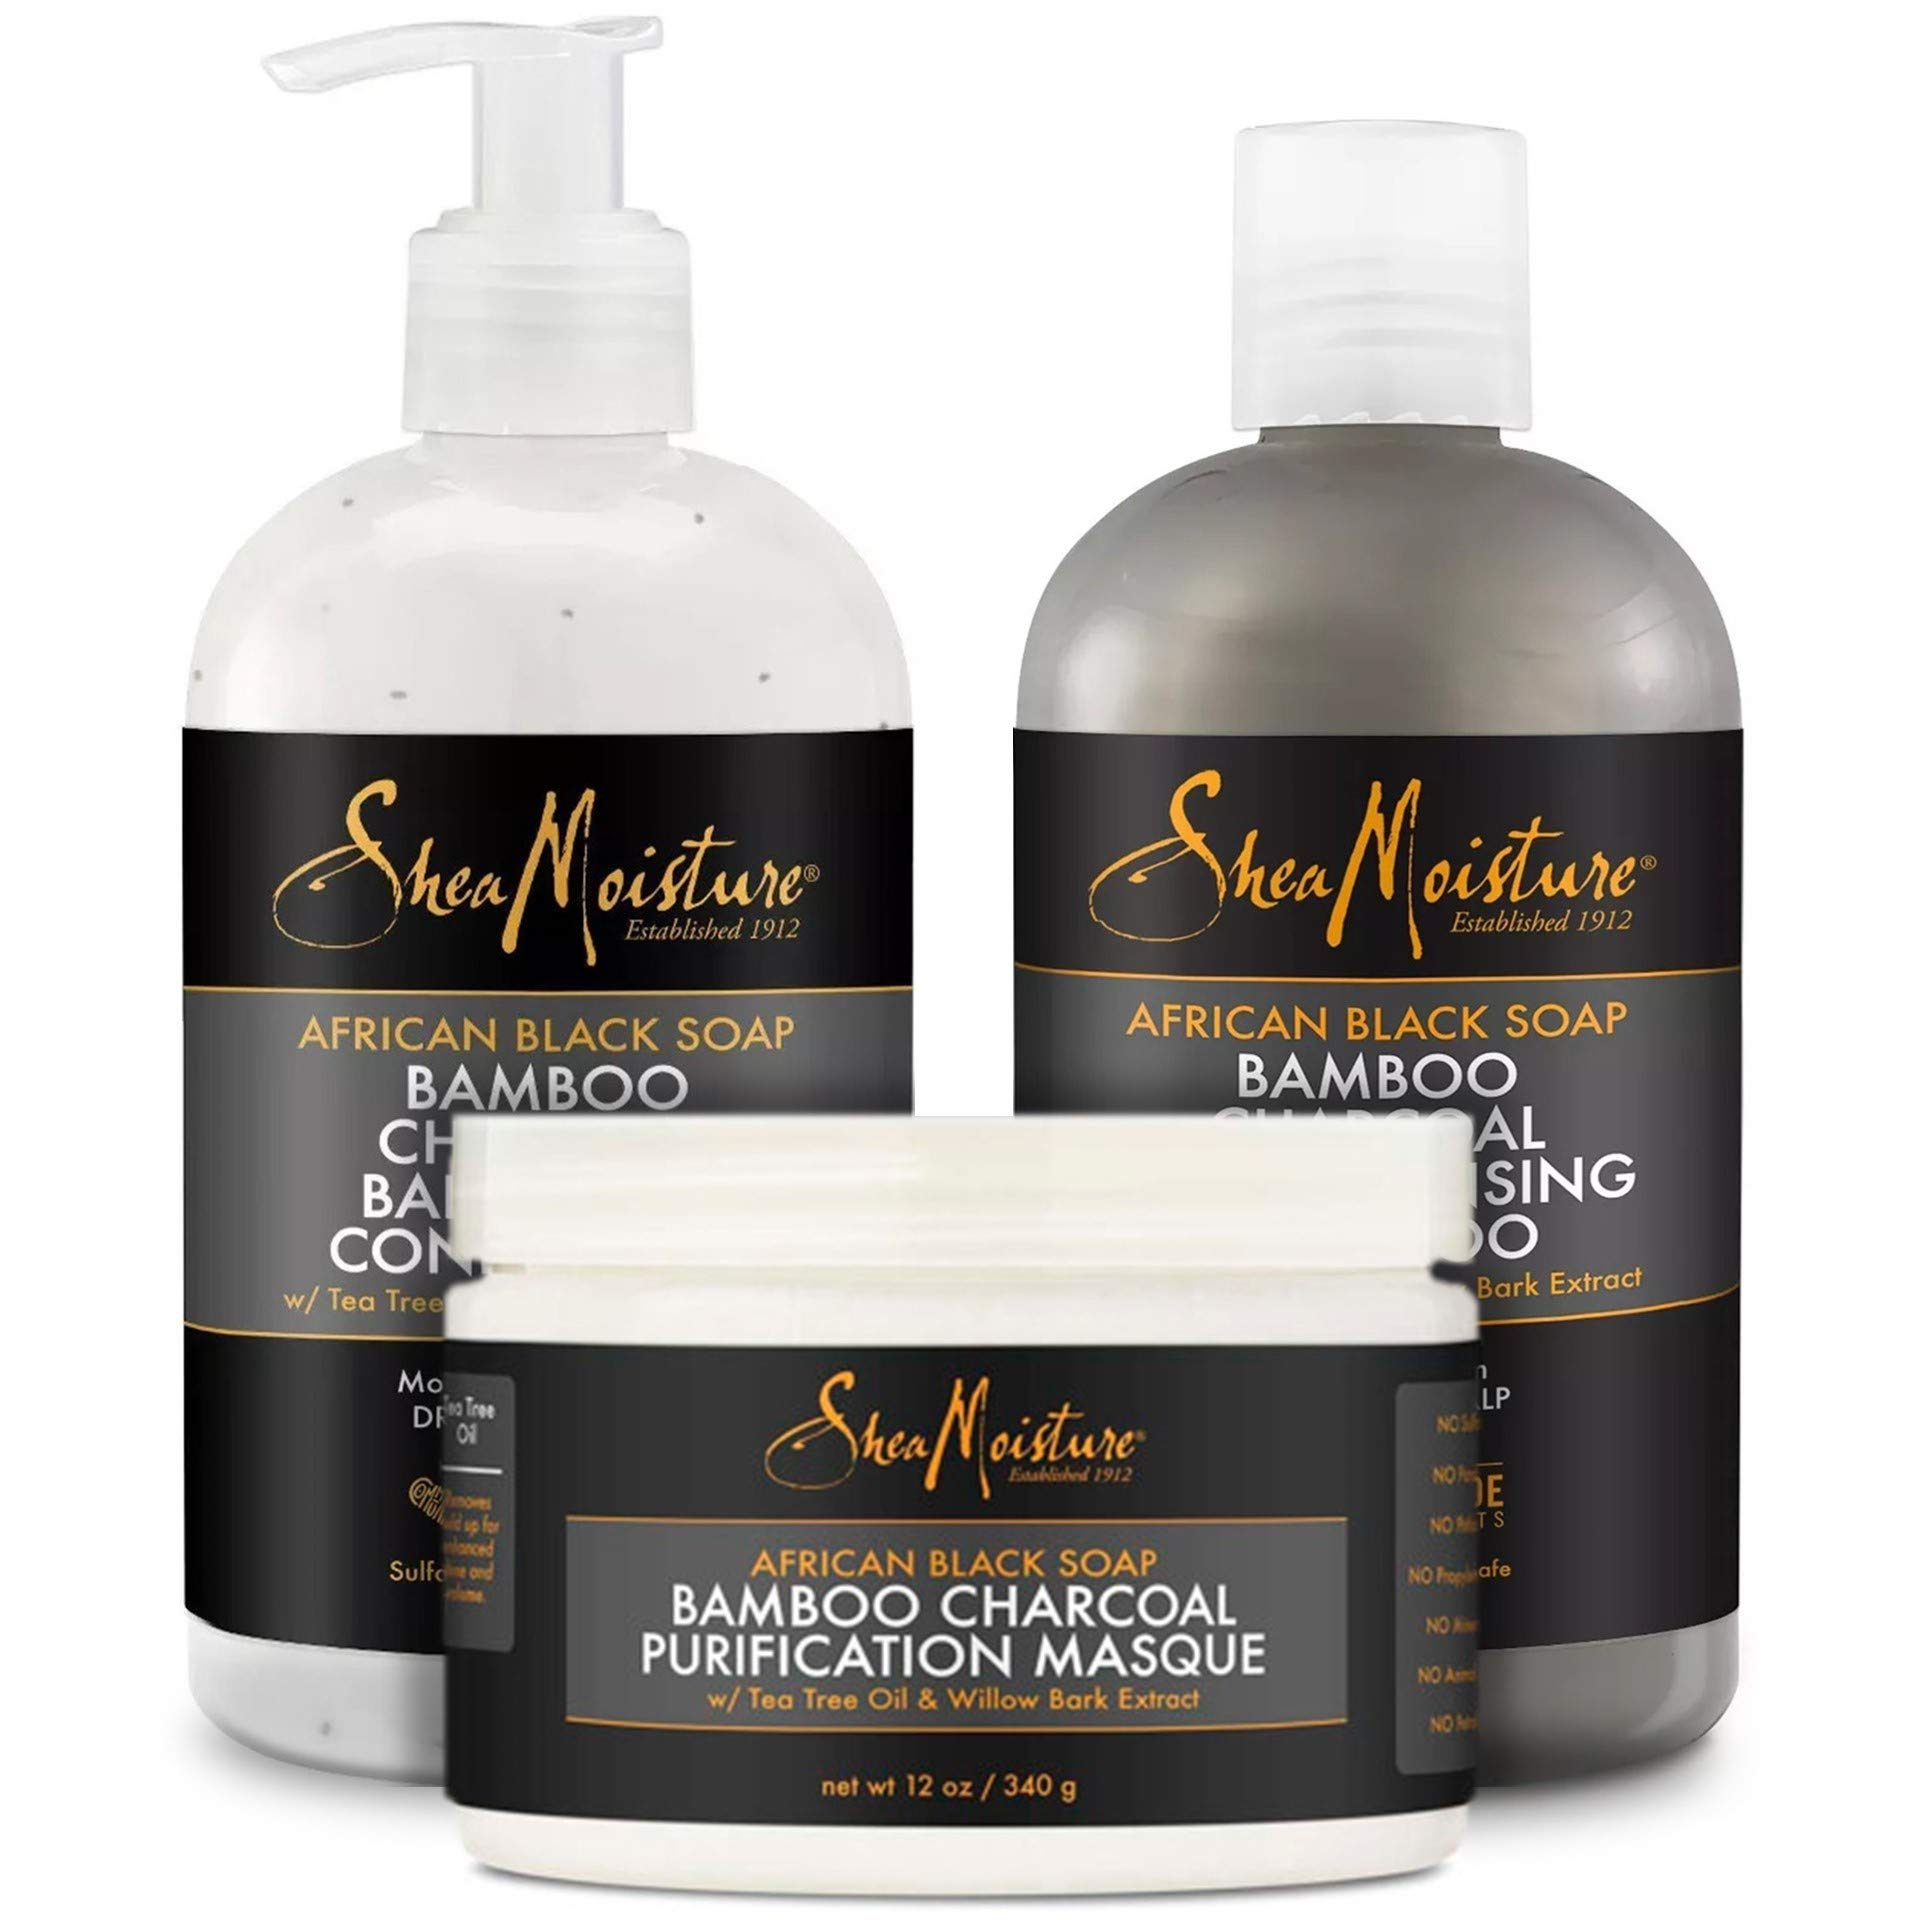 Shea Moisture Shampoo, Conditioner and Masque Set, African Black Soap Bamboo Charcoal Deep Cleansing Shampoo 13 Ounce, Conditioner 13 Ounce, Masque 12 Ounce